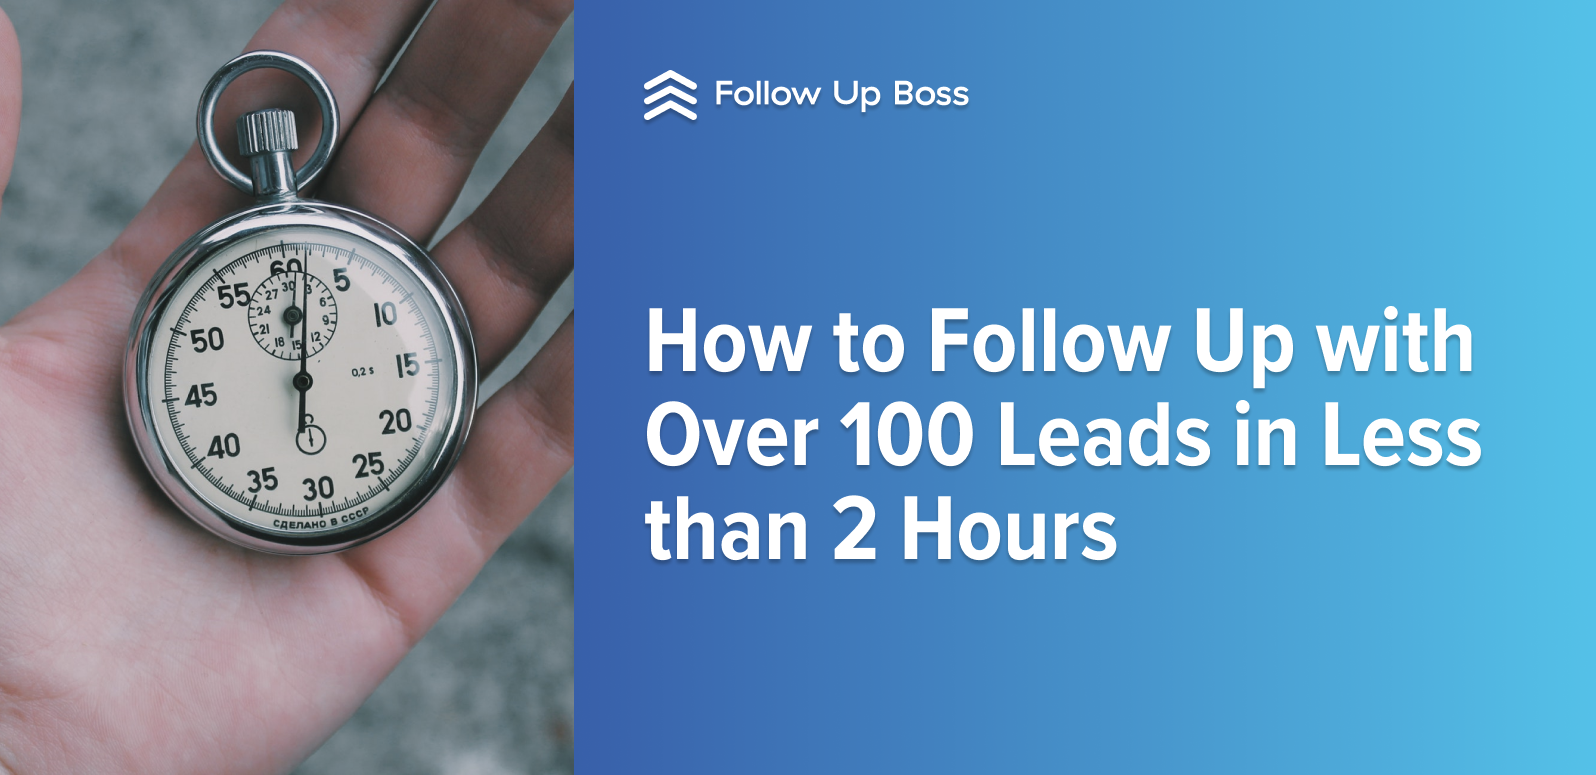 How to Follow Up with Over 100 Leads in Less than 2 Hours